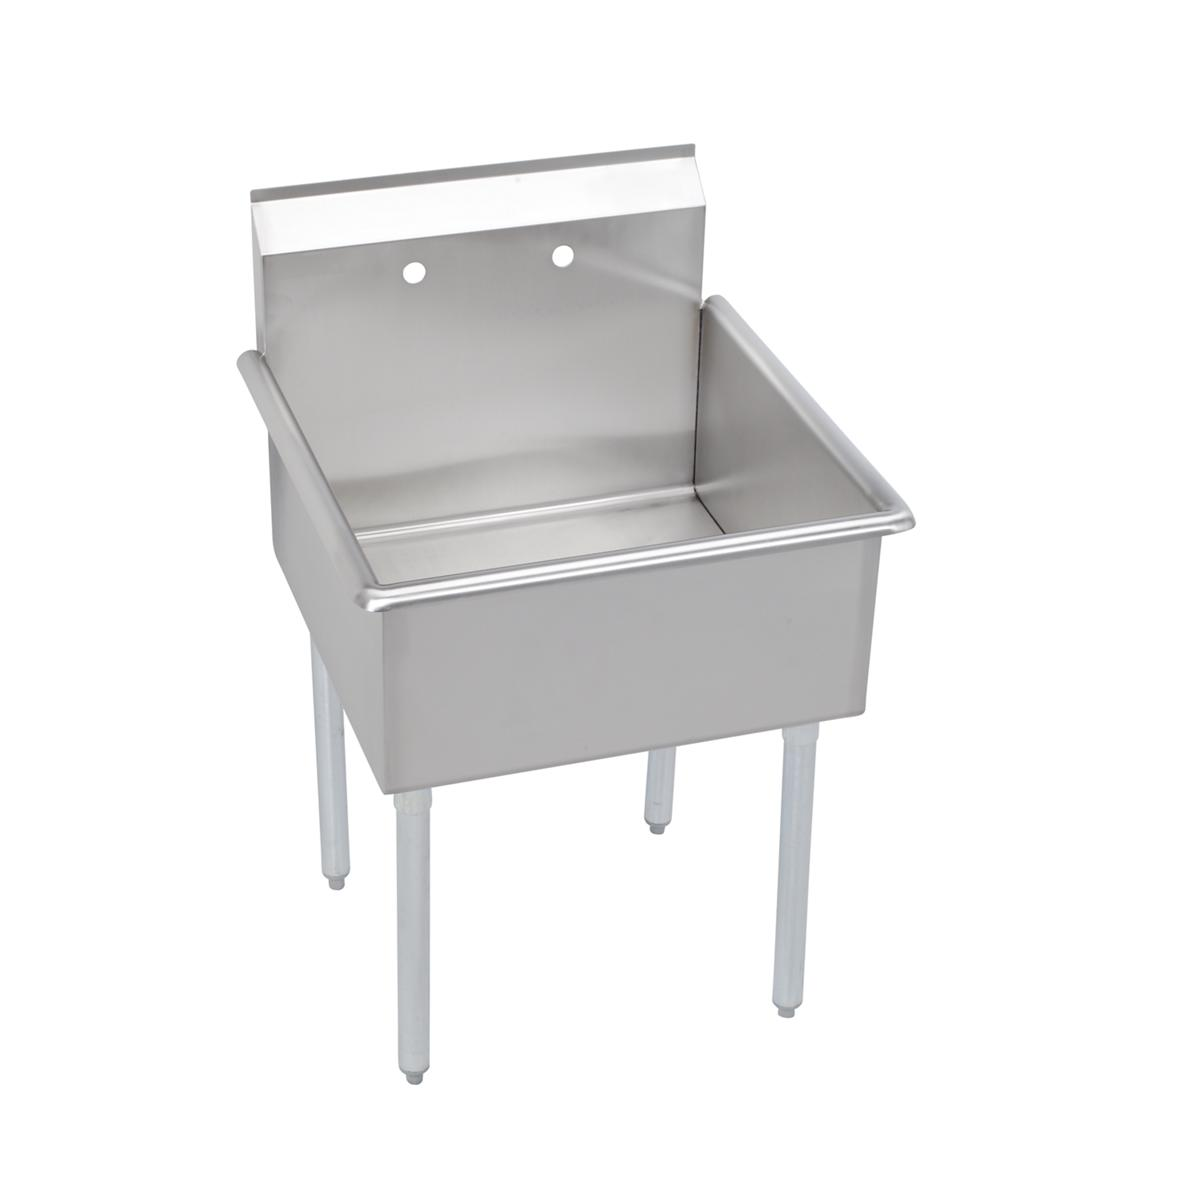 Elkay 1 Compartment Budget Sink, 27x28 Oa, 24x24 Bowl, 12 Deep, No Dbs, Stainless Steel Legs, 18 Ga 300 Series Stainless Steel